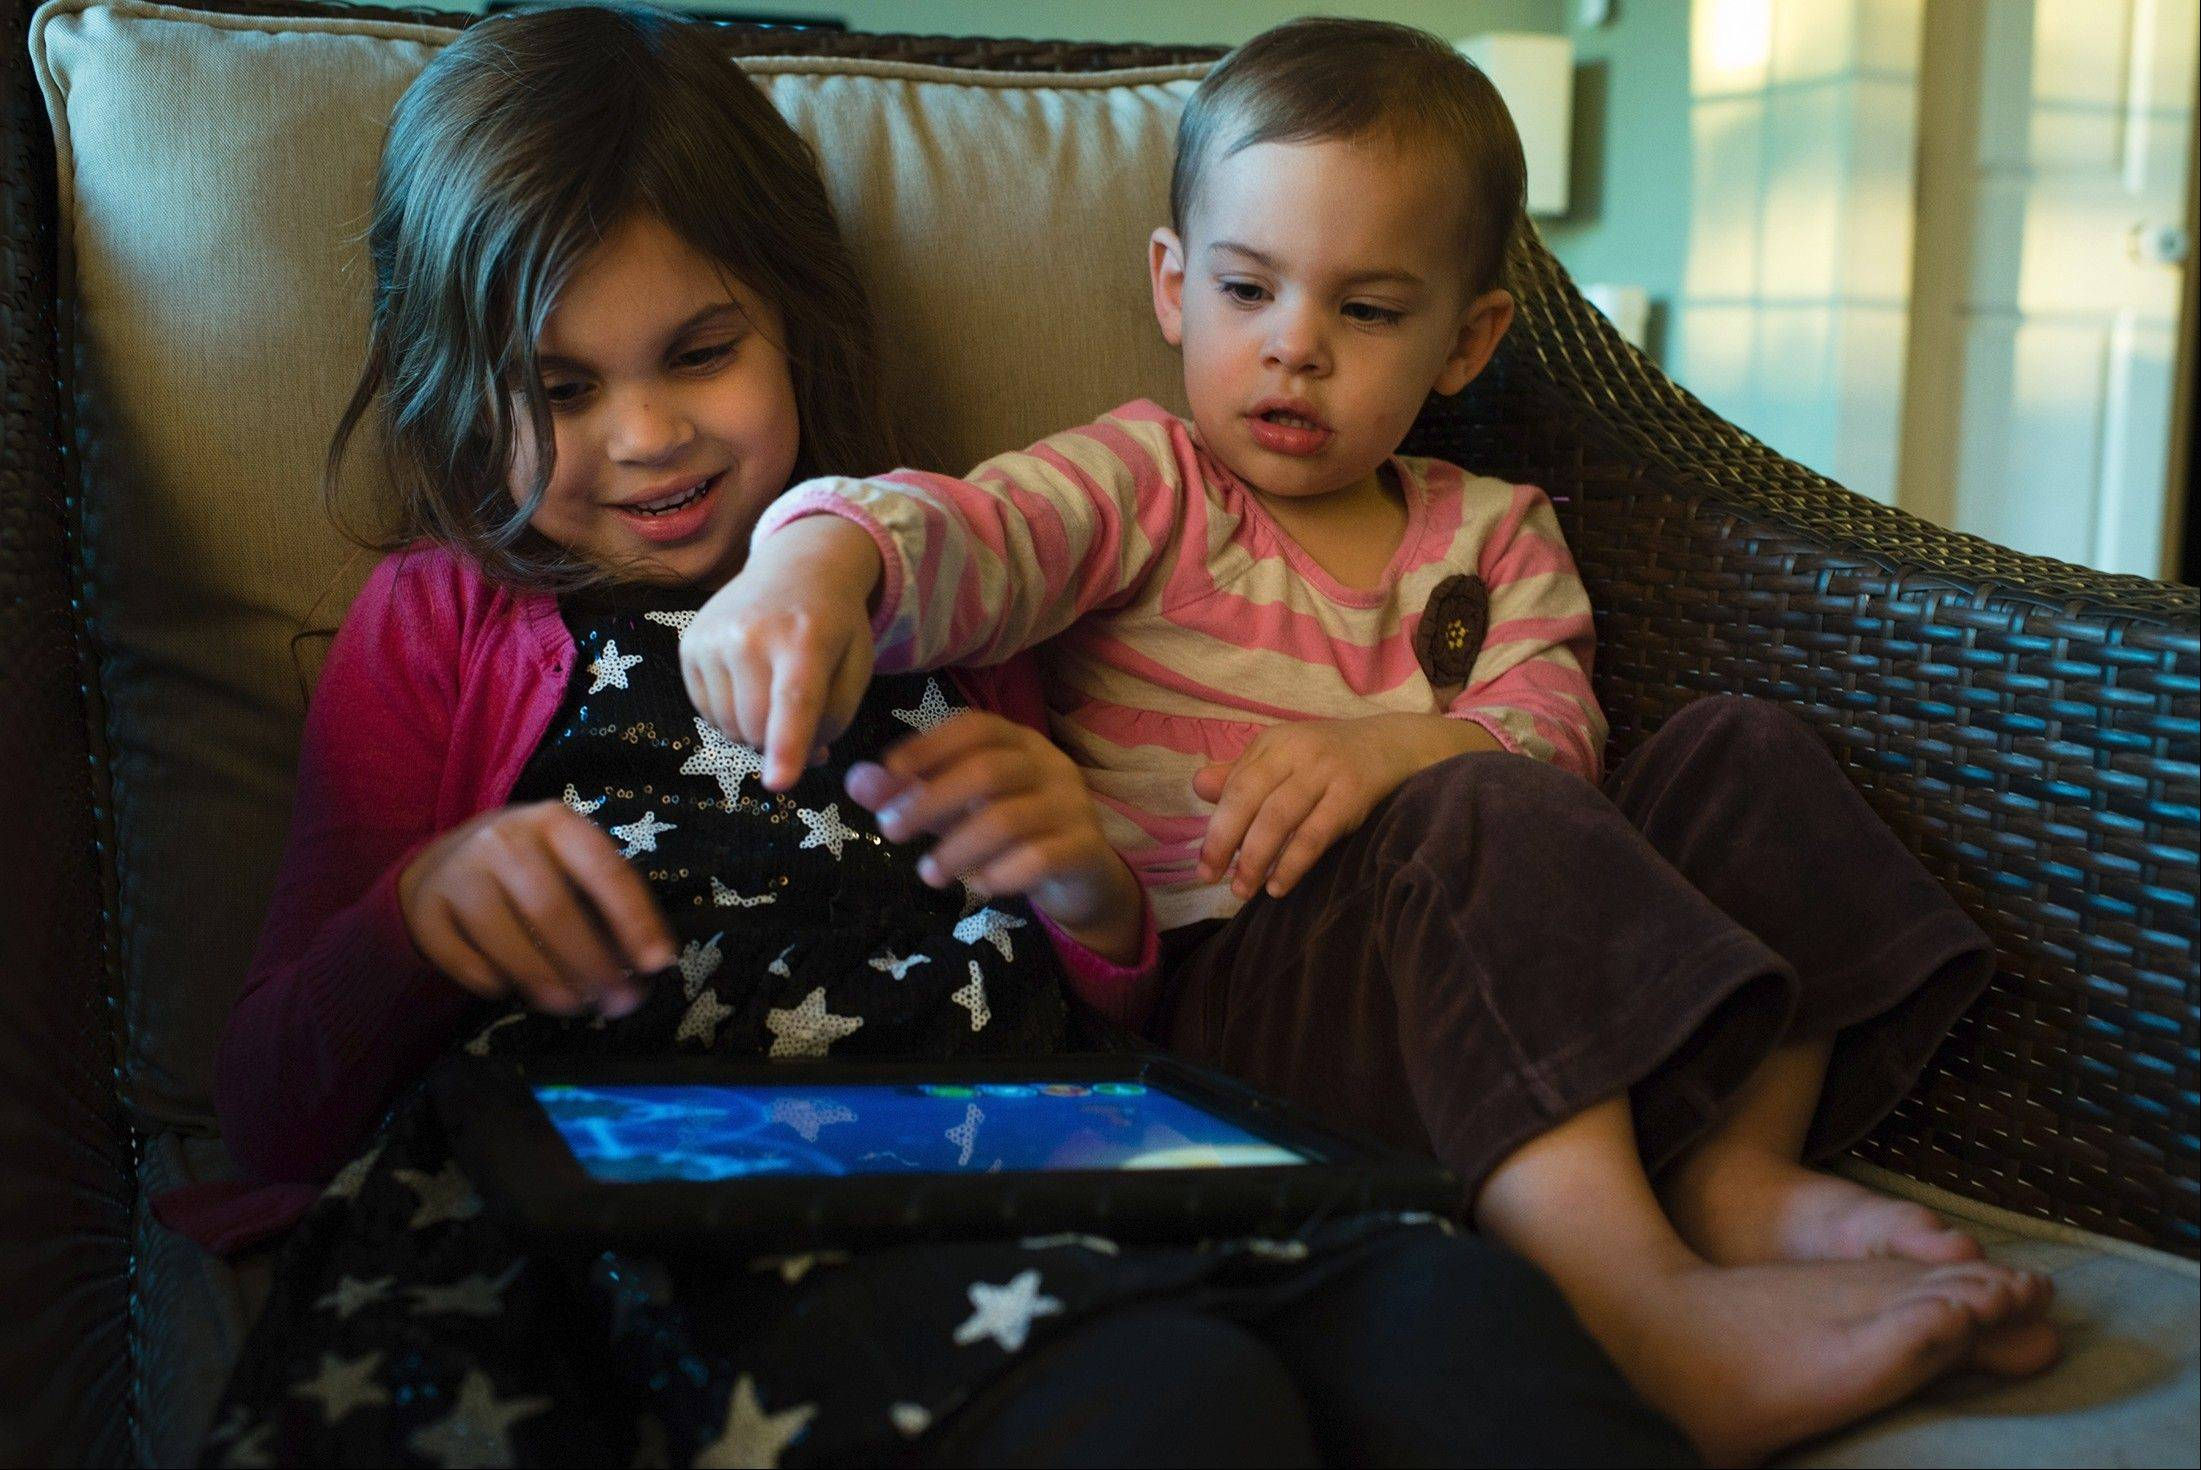 Kaylie Zaal, 5, left, and her little sister, Reagan, 2, play on an iPad at their home in Middletown, Md. Manufacturers are racing to tap into the market for kid-friendly tablets.